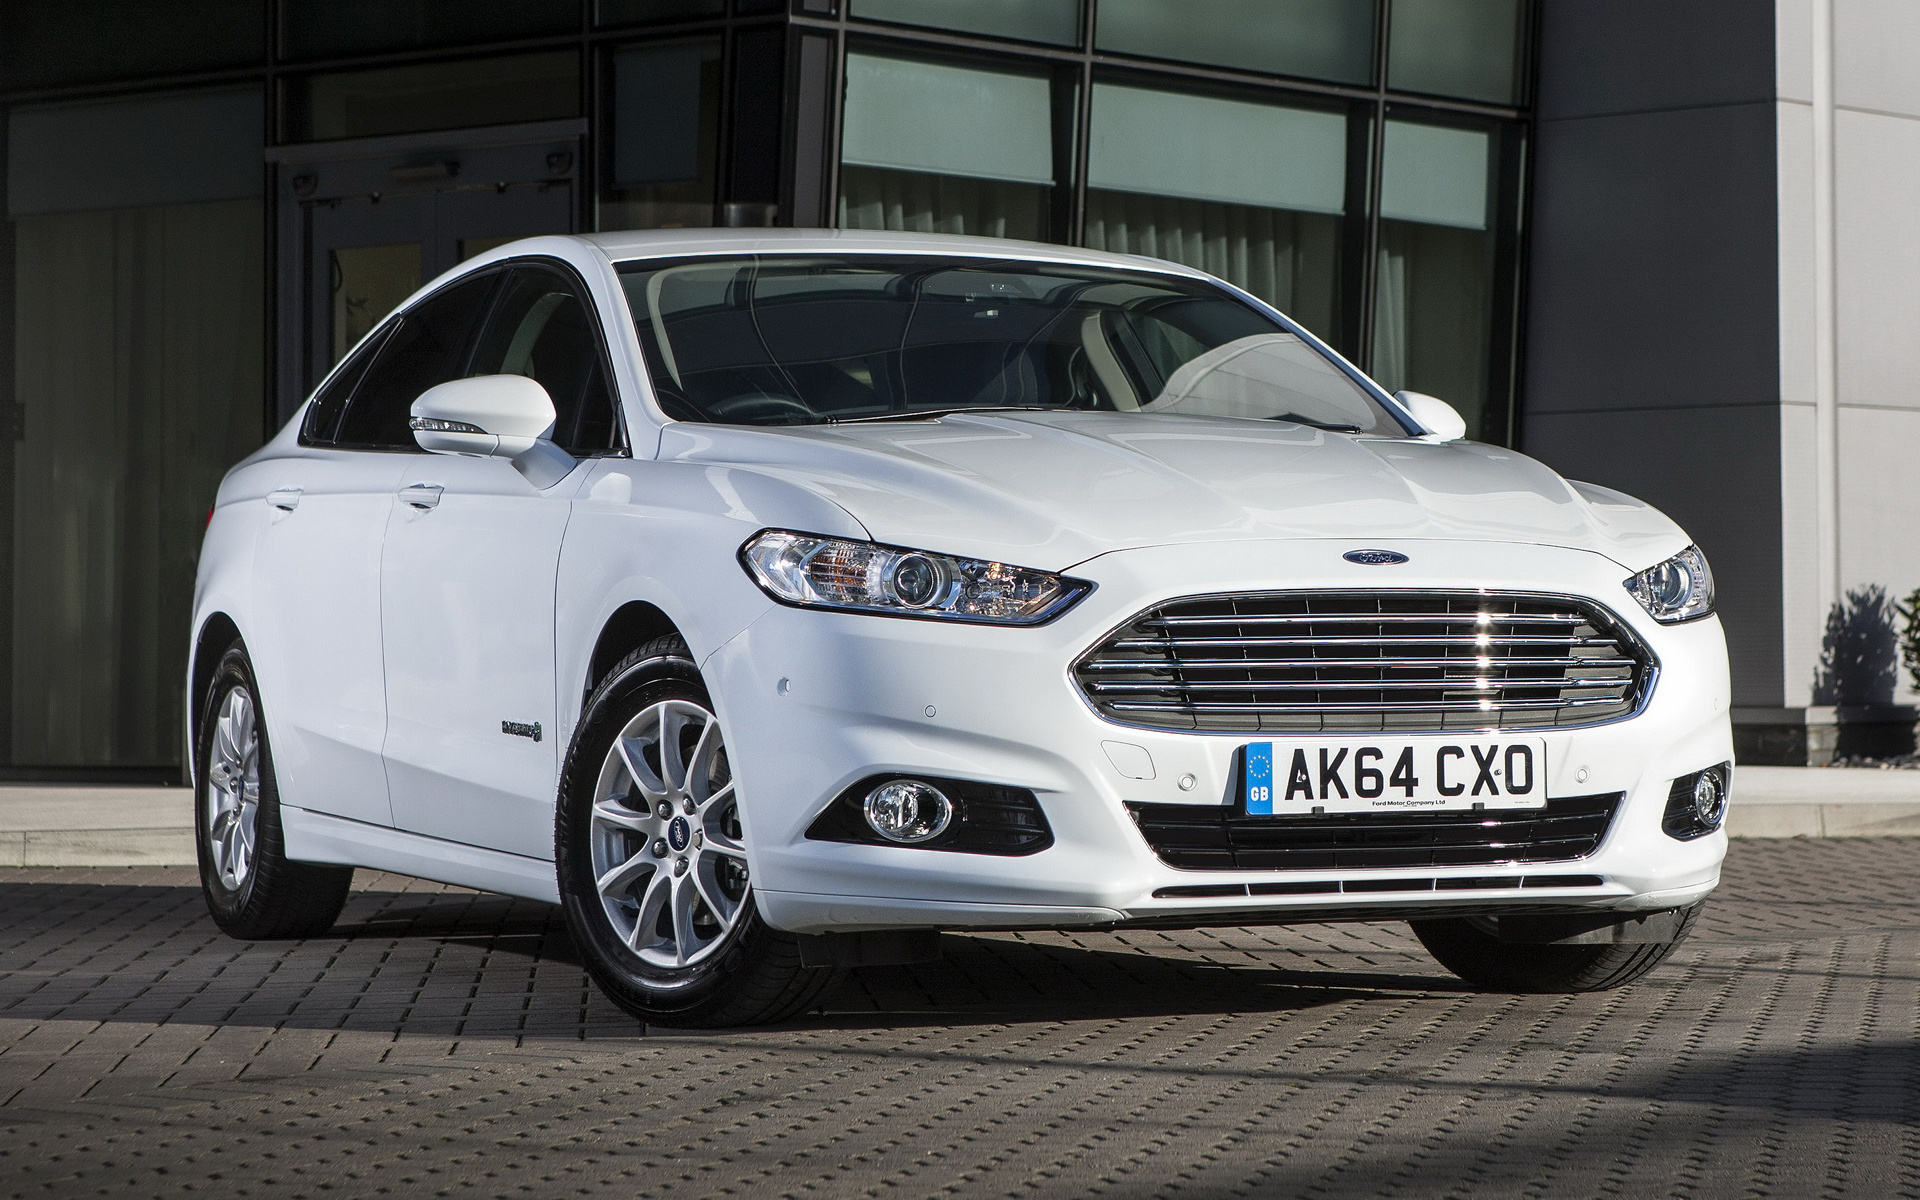 2014 Ford Mondeo Hybrid Sedan UK   Wallpapers and HD Images 1920x1200